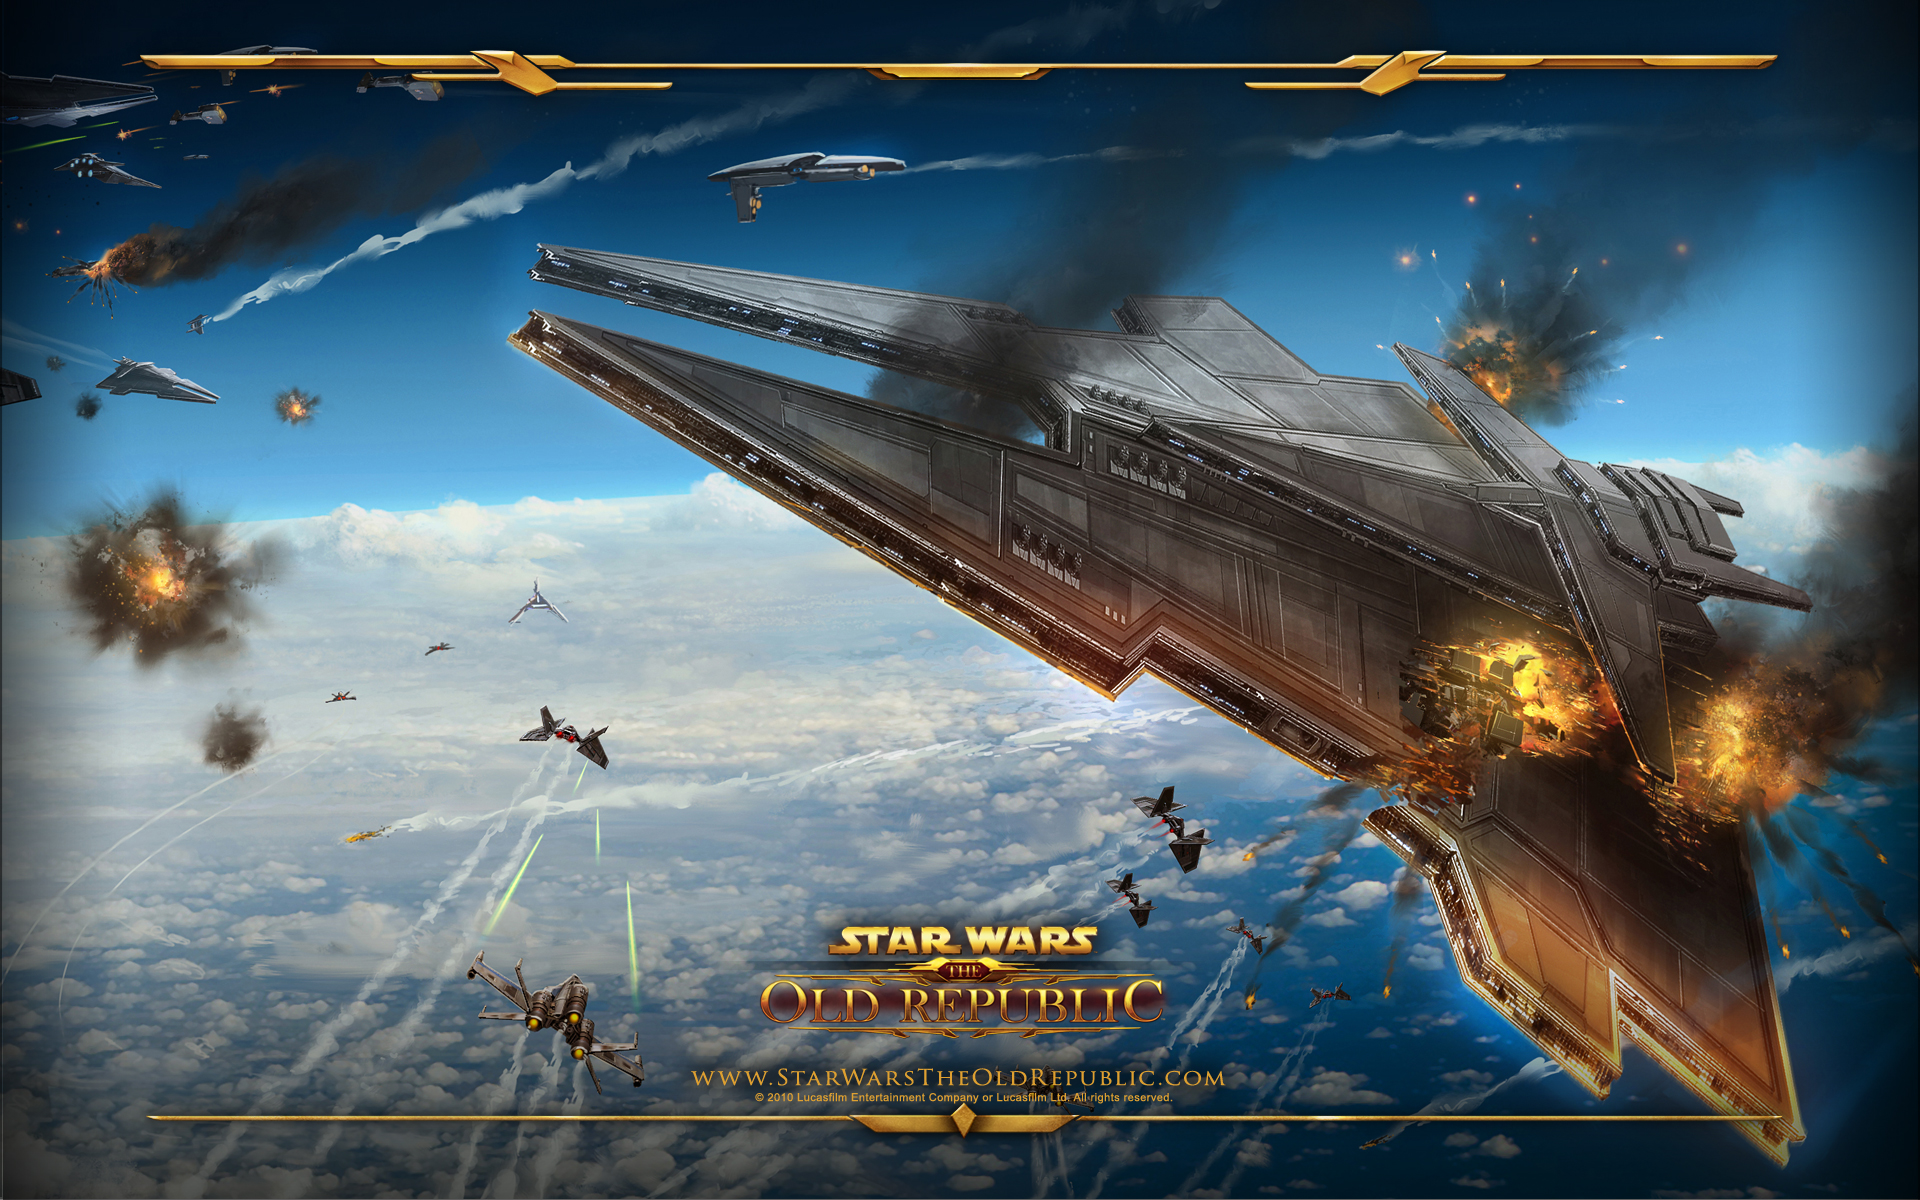 SWTOR Wallpapers Star Wars Wallpapers Star Wars TOR Fever SWTOR 1920x1200